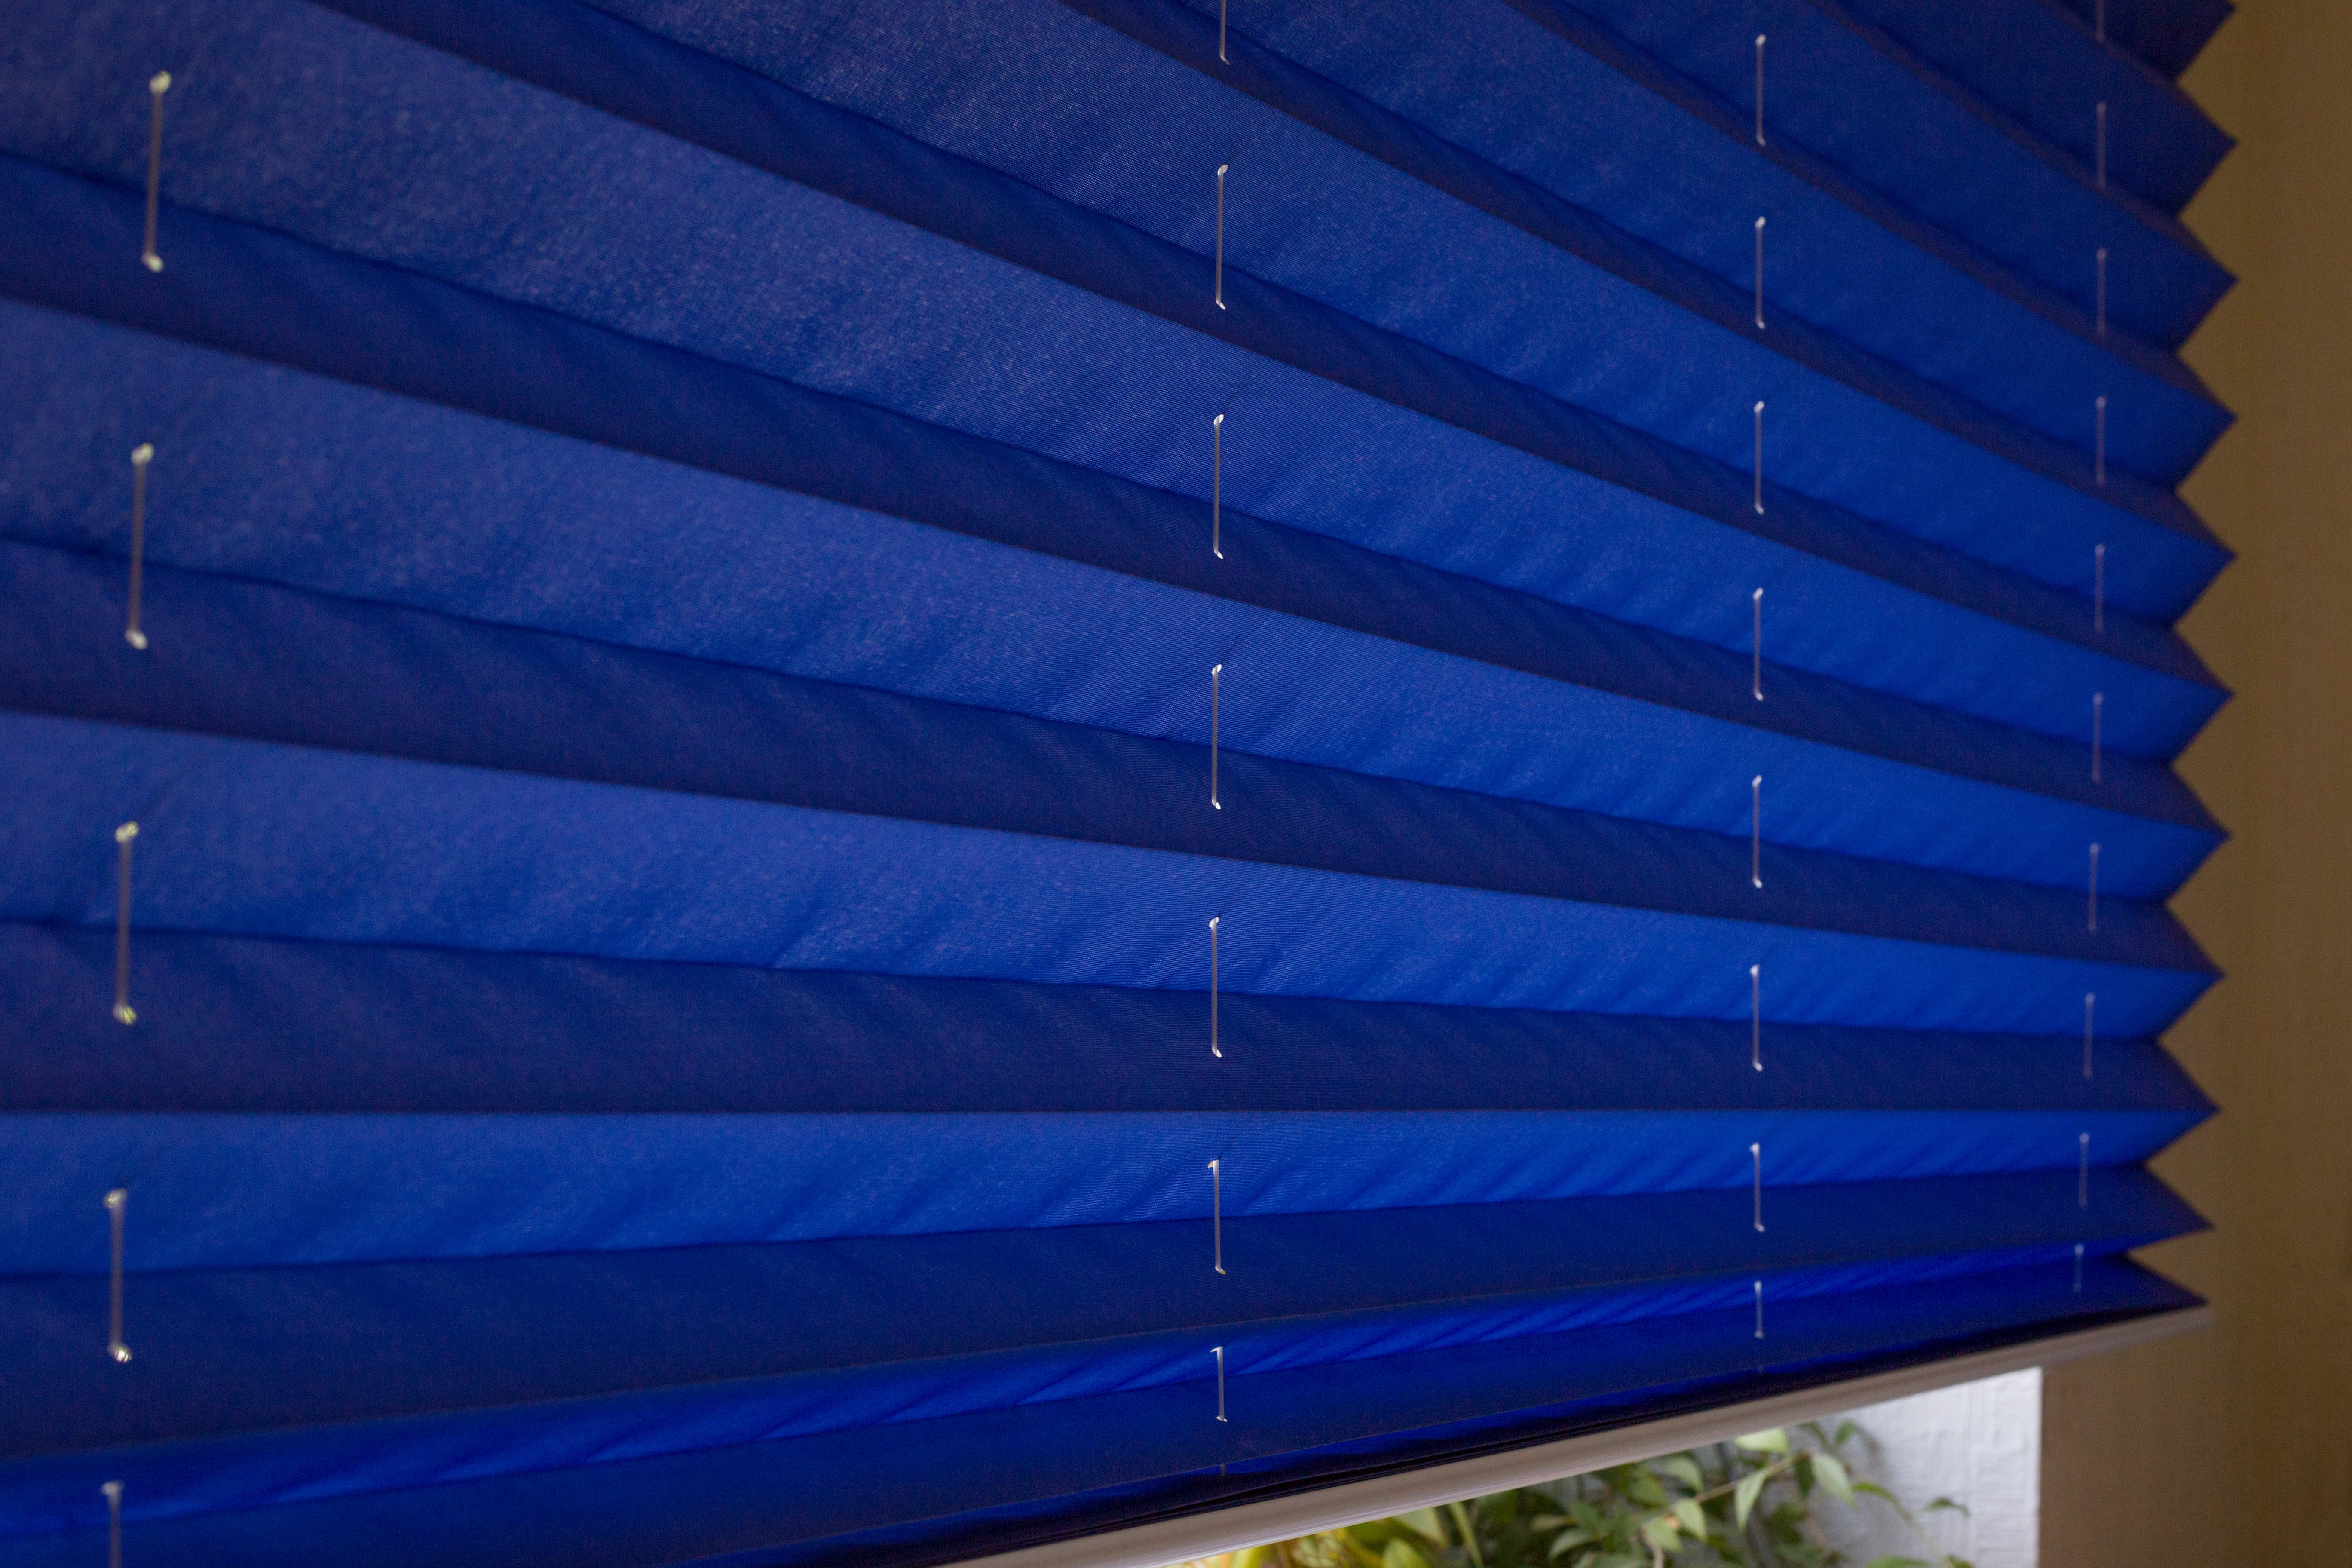 A free hanging blue pleated blinds